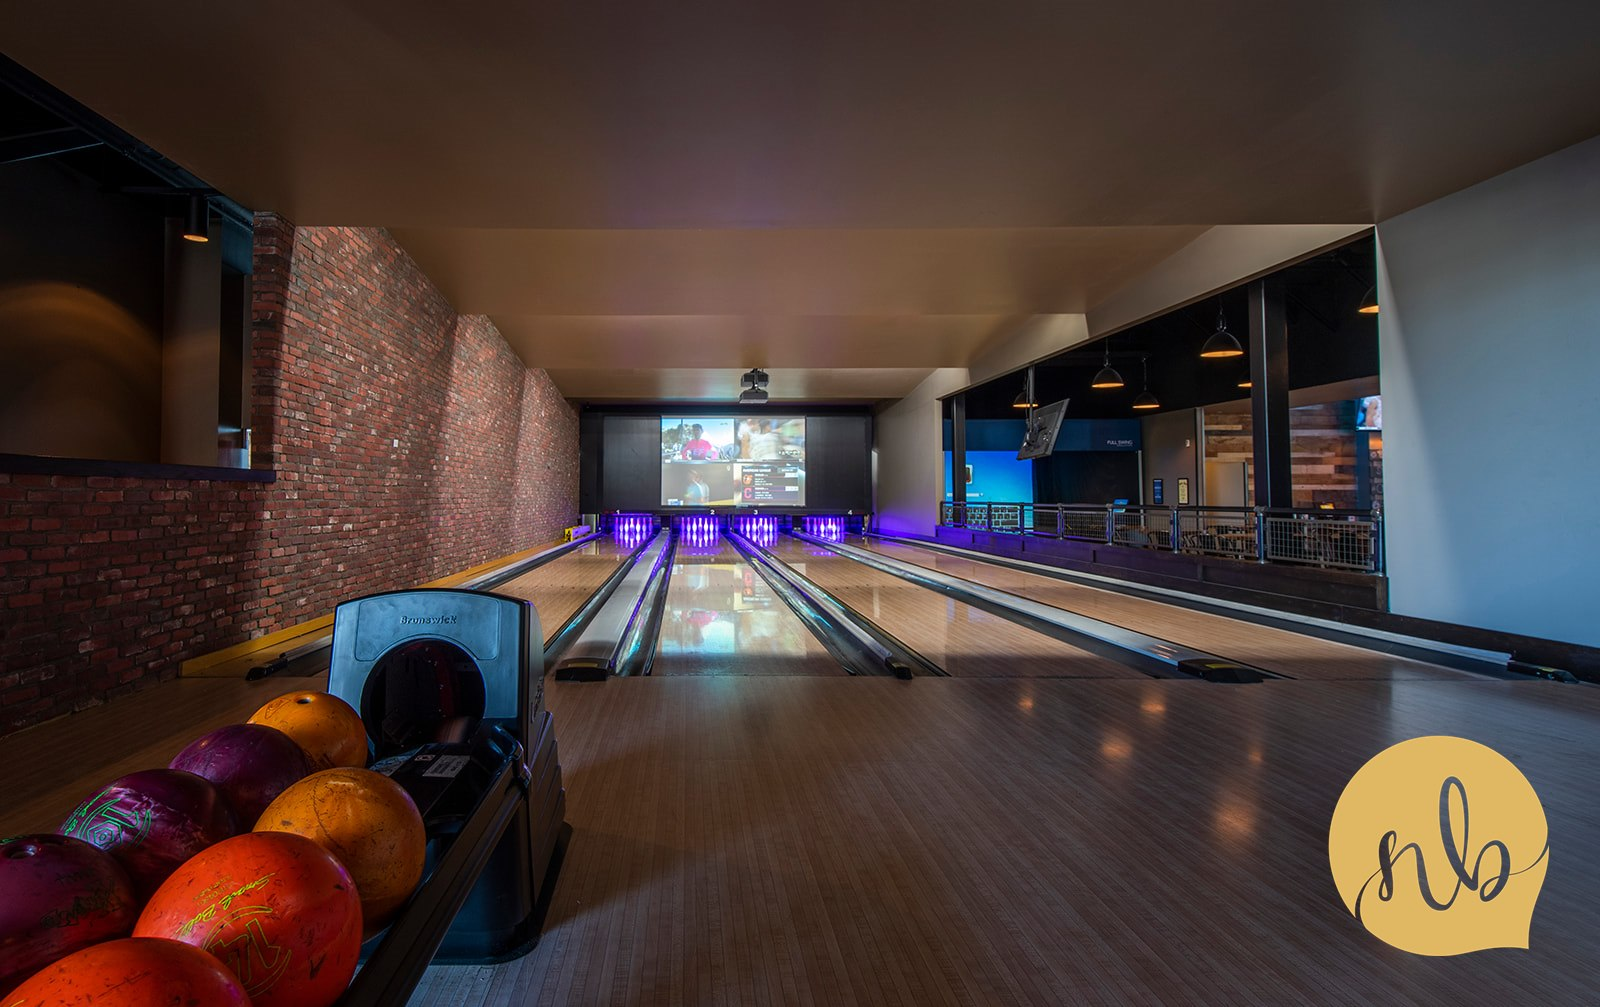 No_Other_Pub_Bowling_Alley___Nicole_Bissey_Photography_01.jpg